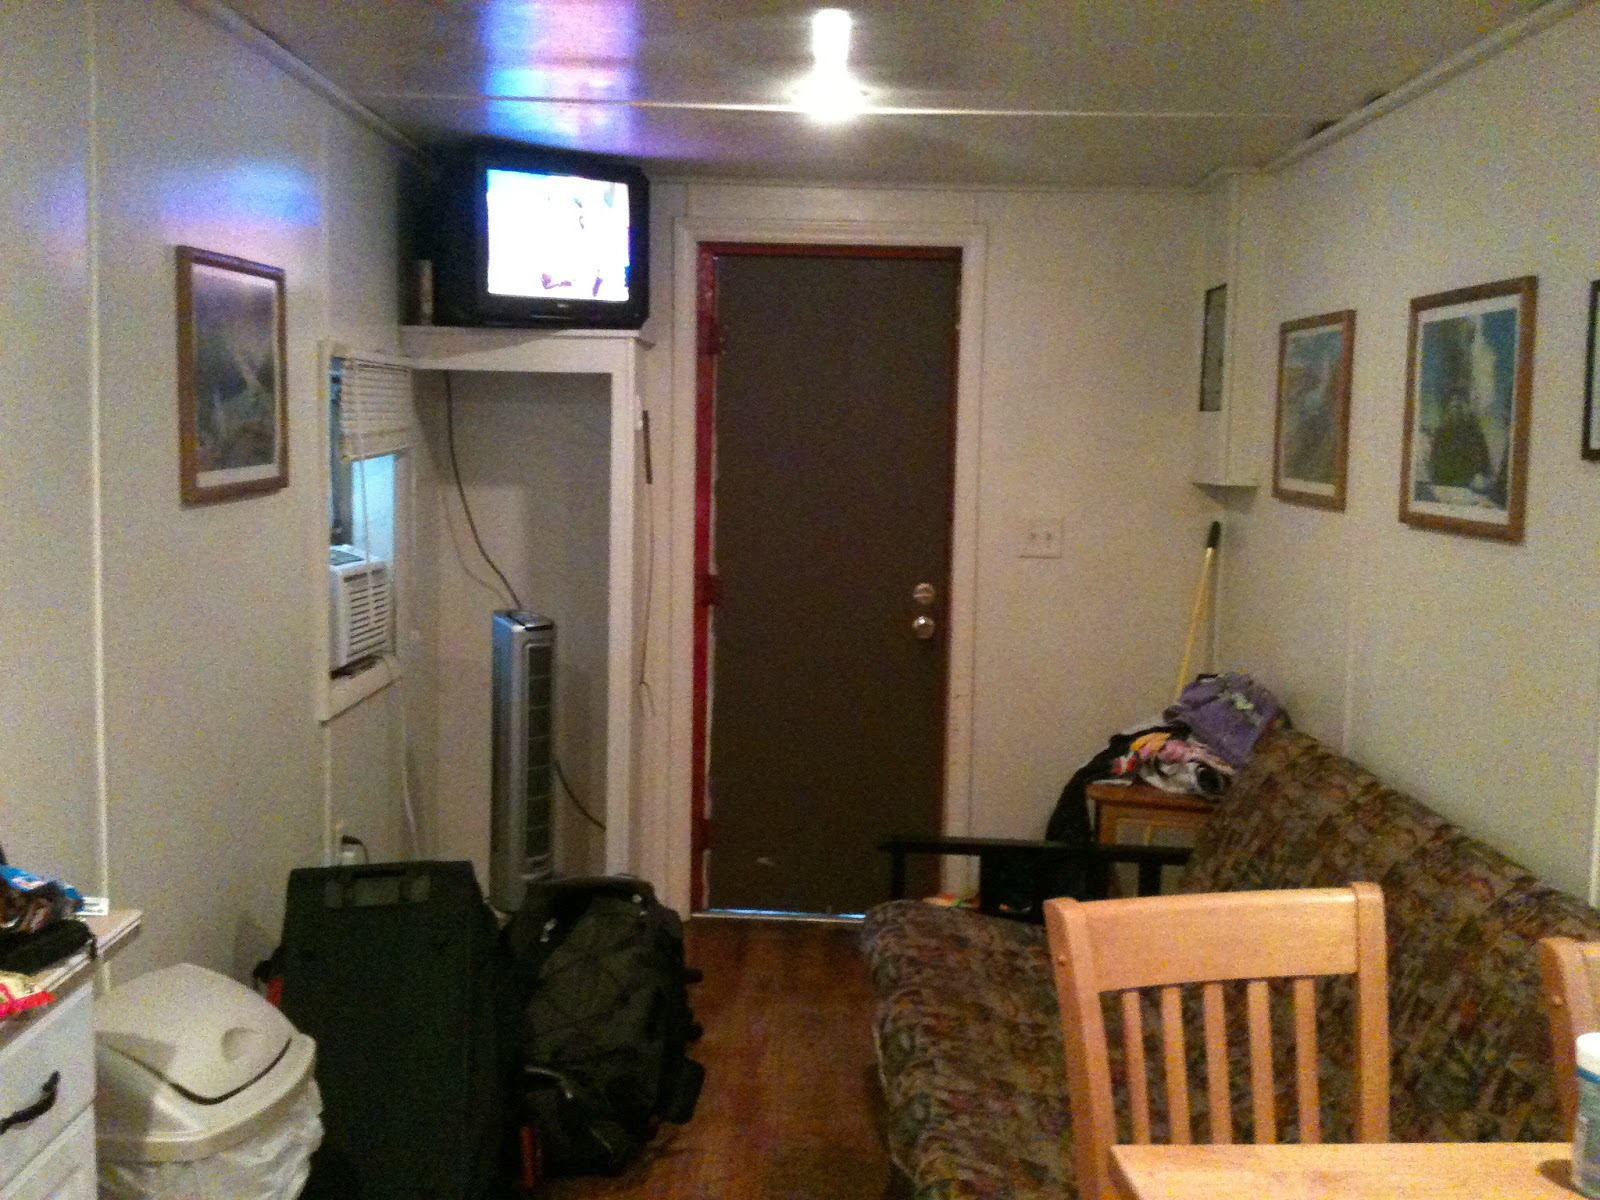 Living Room Area - Caboose Camping at the Mt. Pleasant (Charleston) SC - KOA